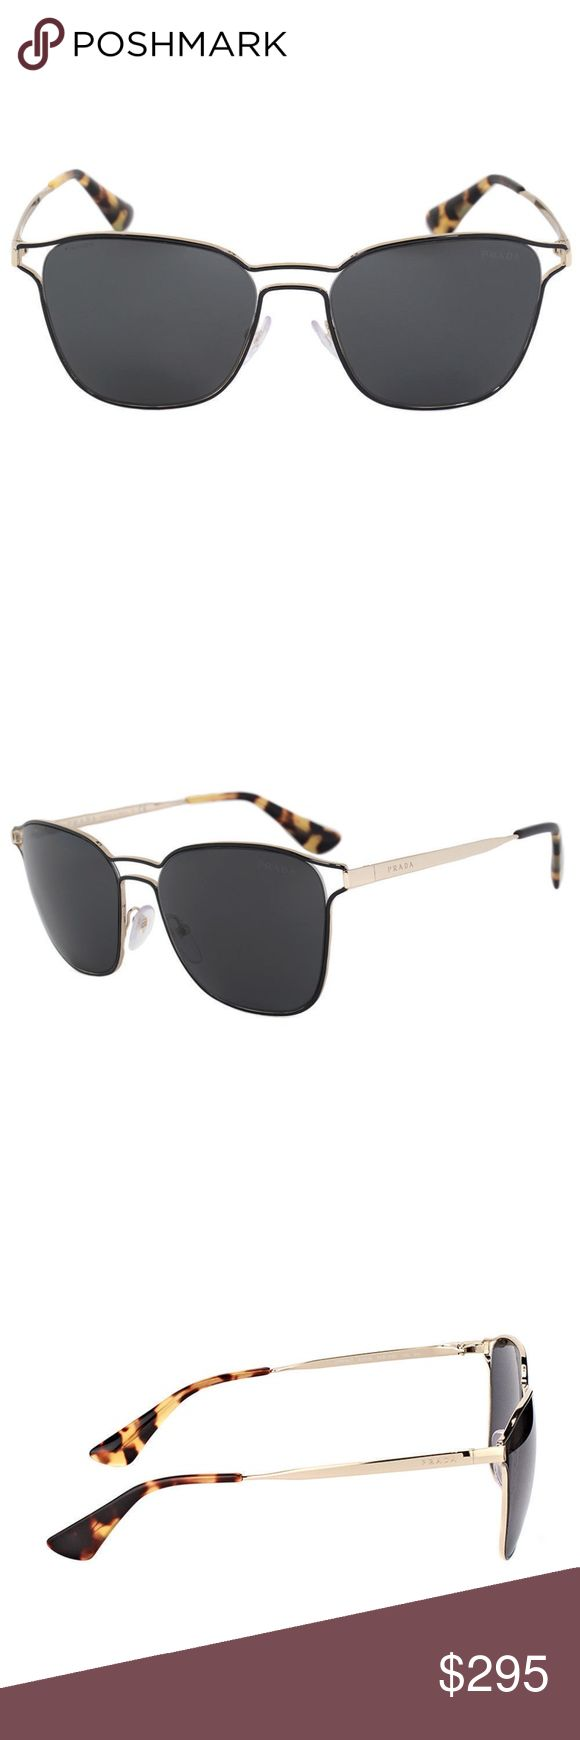 Authentic Prada Black Pale-Gold Metal Sunglasses 100% Authentic Prada Sunglasses // BNWT // Comes with Case, Cloth & Papers // Retail: $400  - Model Number: PR 54TS 1AB5S0 - Frame Color: Black / Pale Gold - Material: Metal - Style: Square - Lens Color: Grey - Lens Technology: Anti-Reflective - Manufactured: Italy - 100% UV Protection  Reasonable offers welcome! Prada Accessories Sunglasses